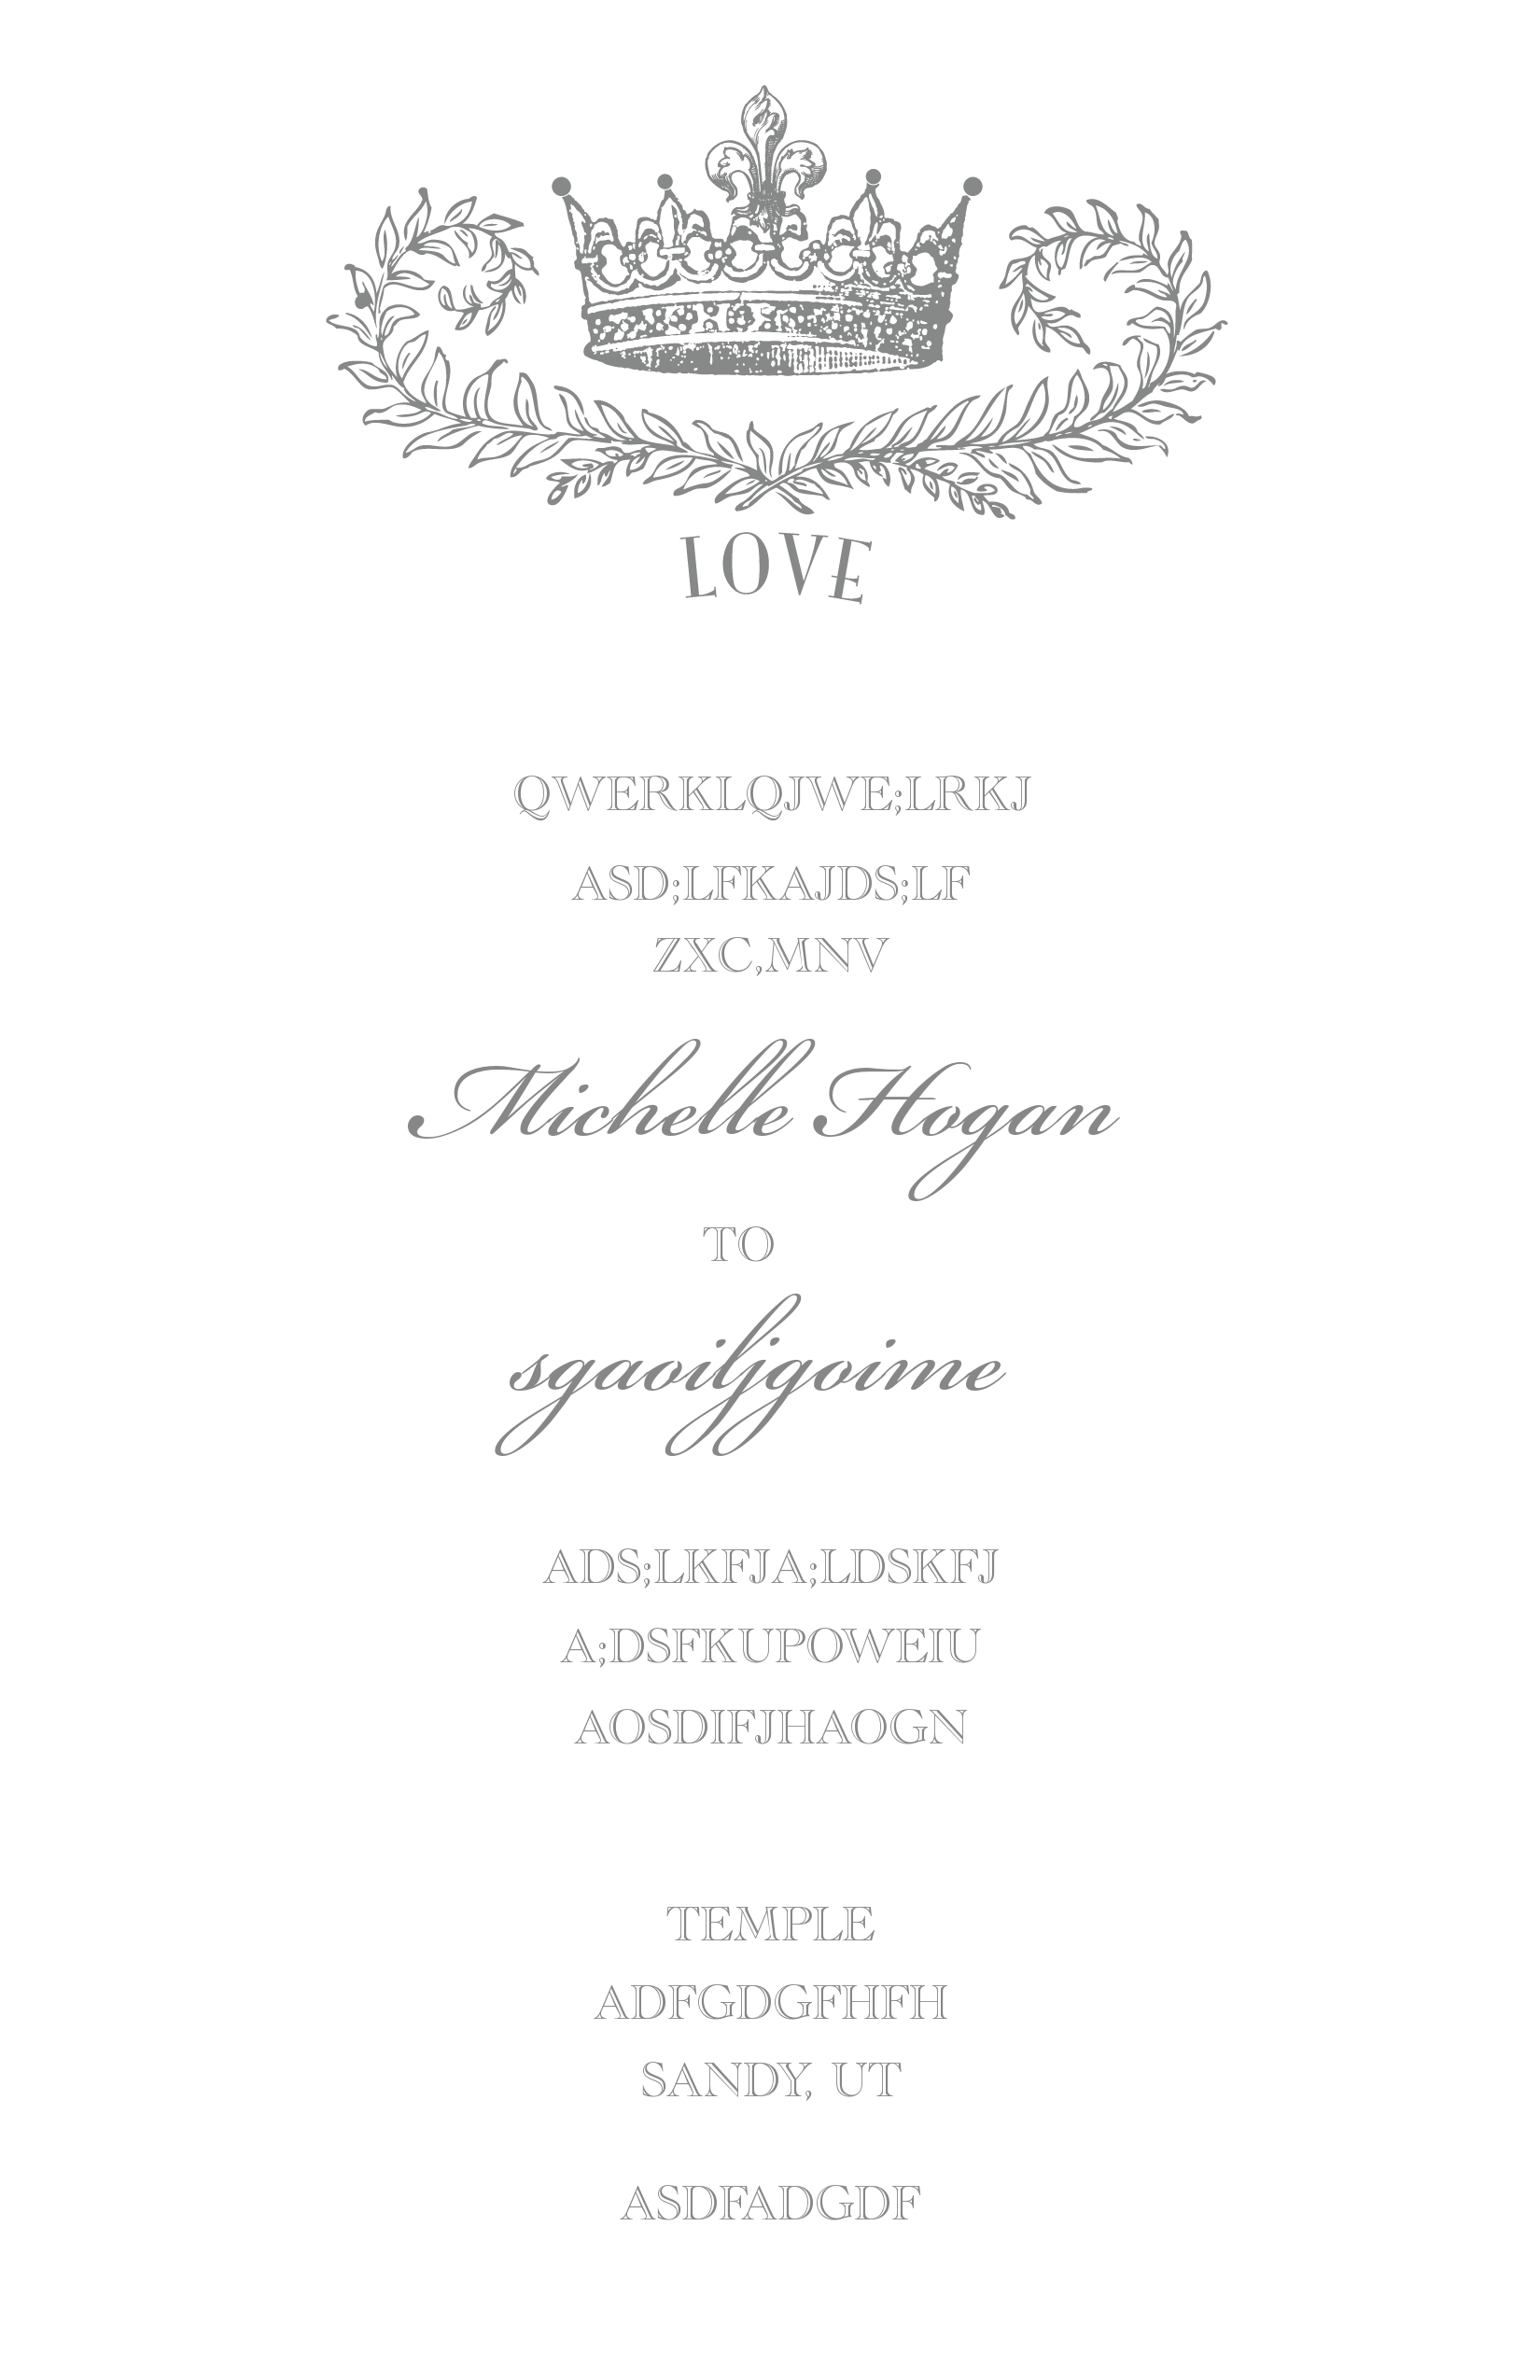 Royal Crown Free Printable Wedding Invitation Suite | Free wedding ...